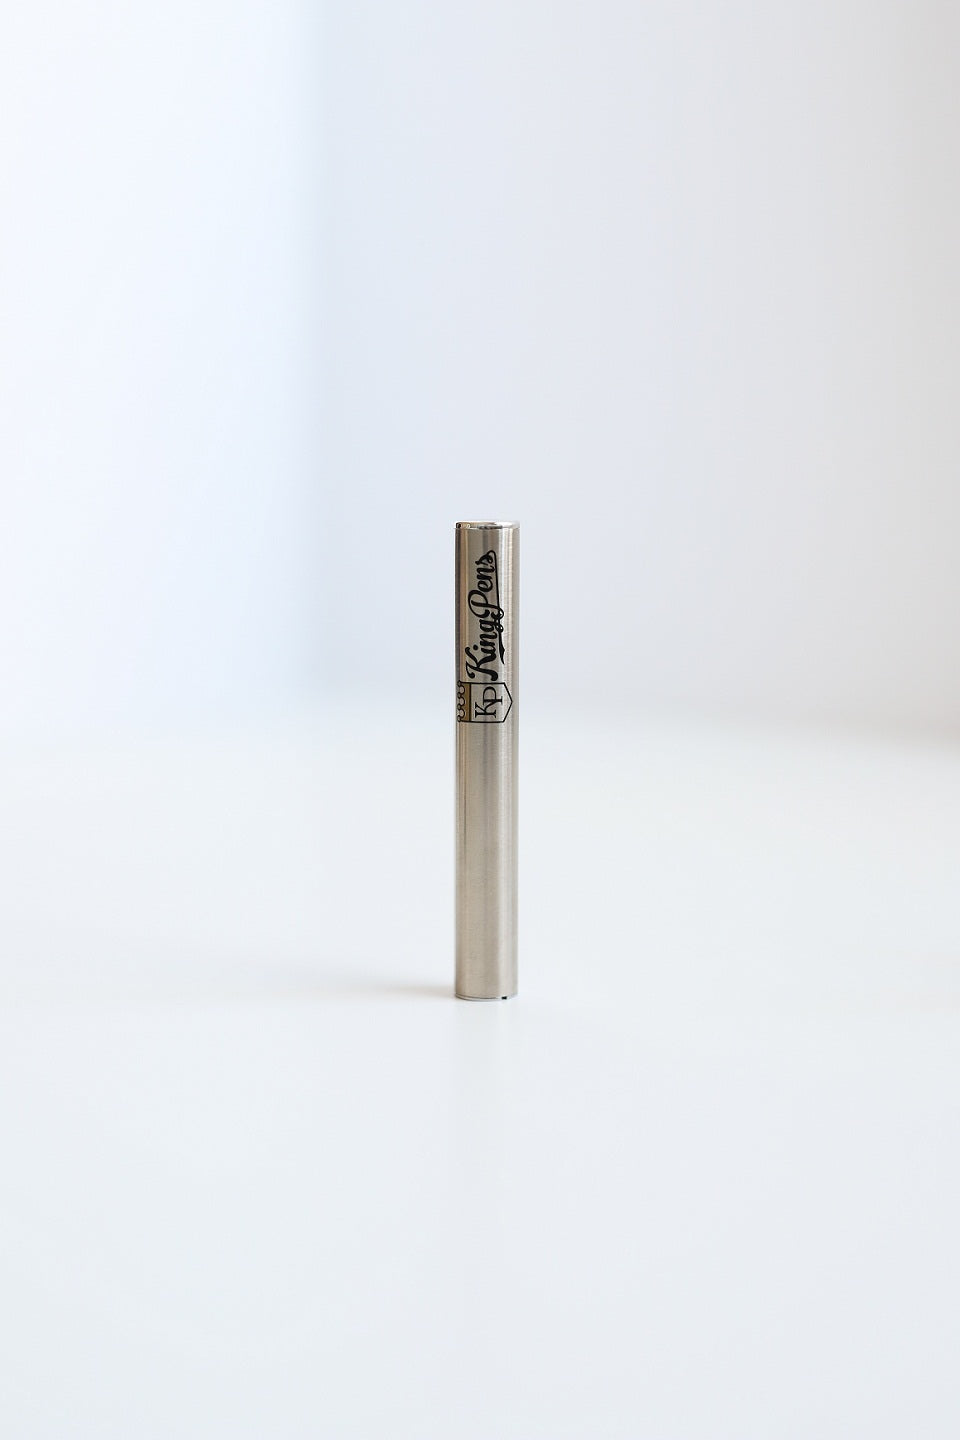 Think Botanicals CBD Vape Pen